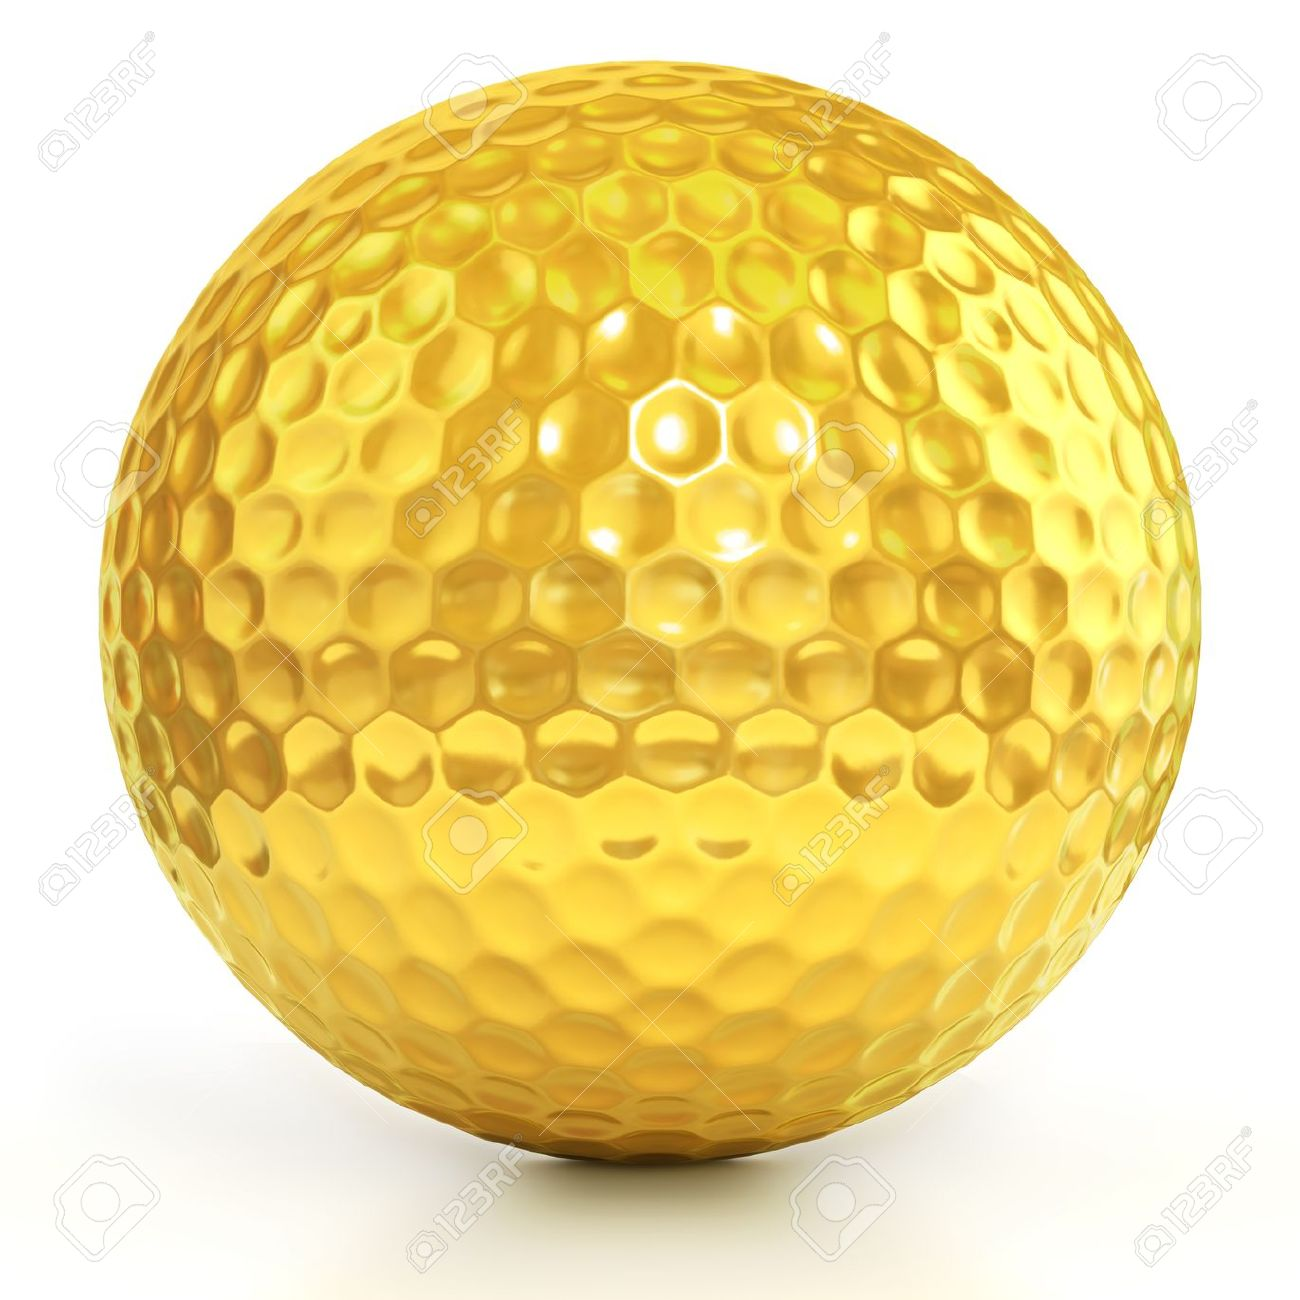 golden golf ball isolated over white background Stock Photo - 12557652